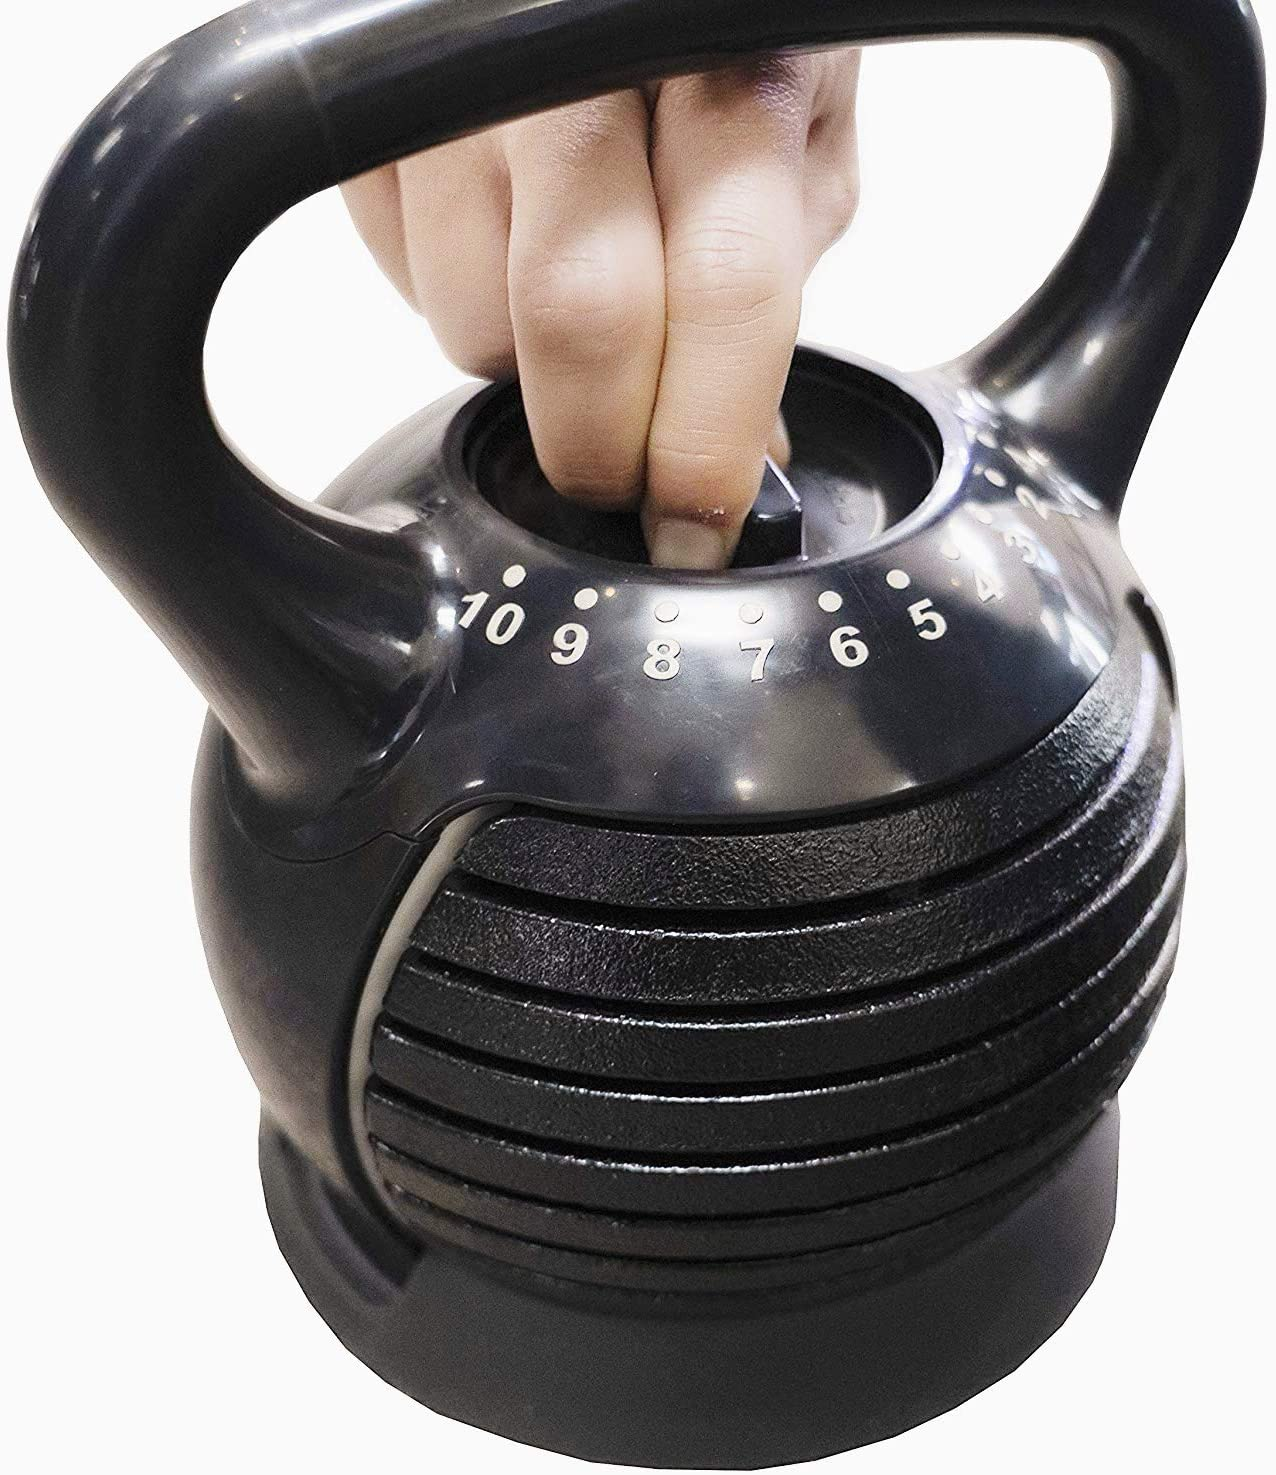 Cast Iron Kettlebell Weight Set 2.5-25Lbs for Full Body Workout and Home Use Strength Training DAZONE Adjustable Kettlebell